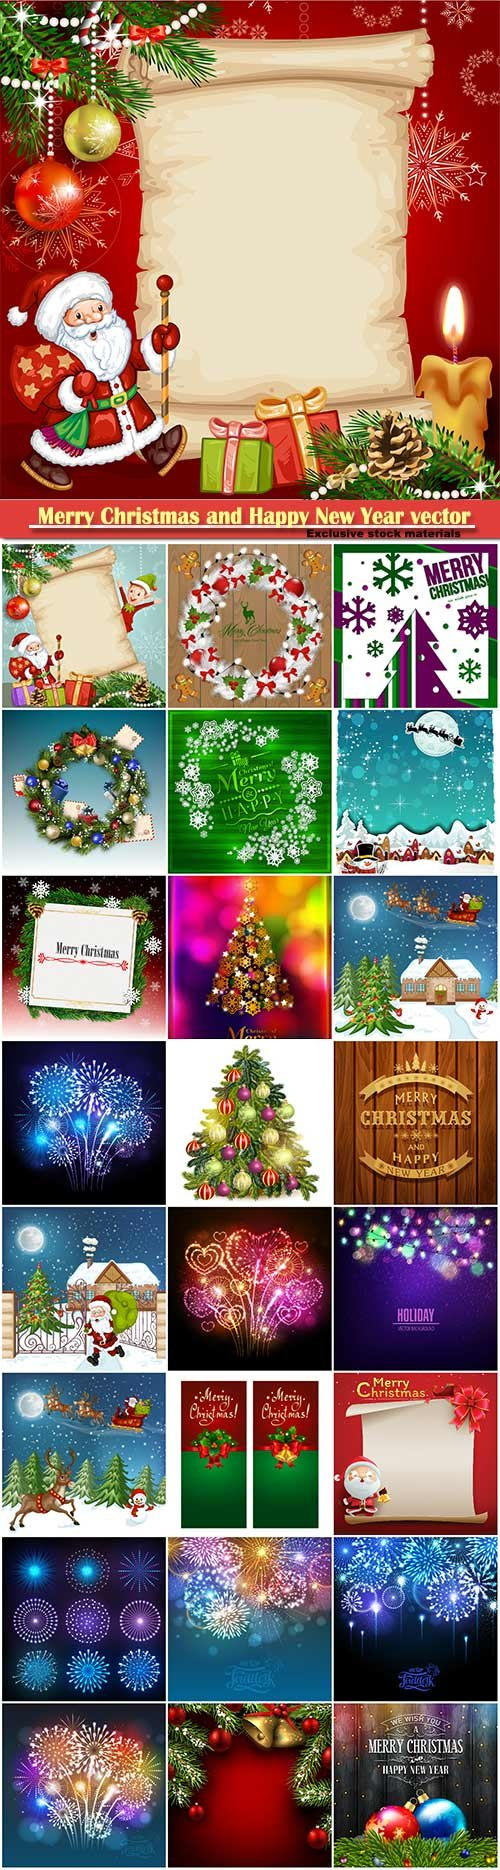 Merry Christmas and Happy New Year vector design # 22